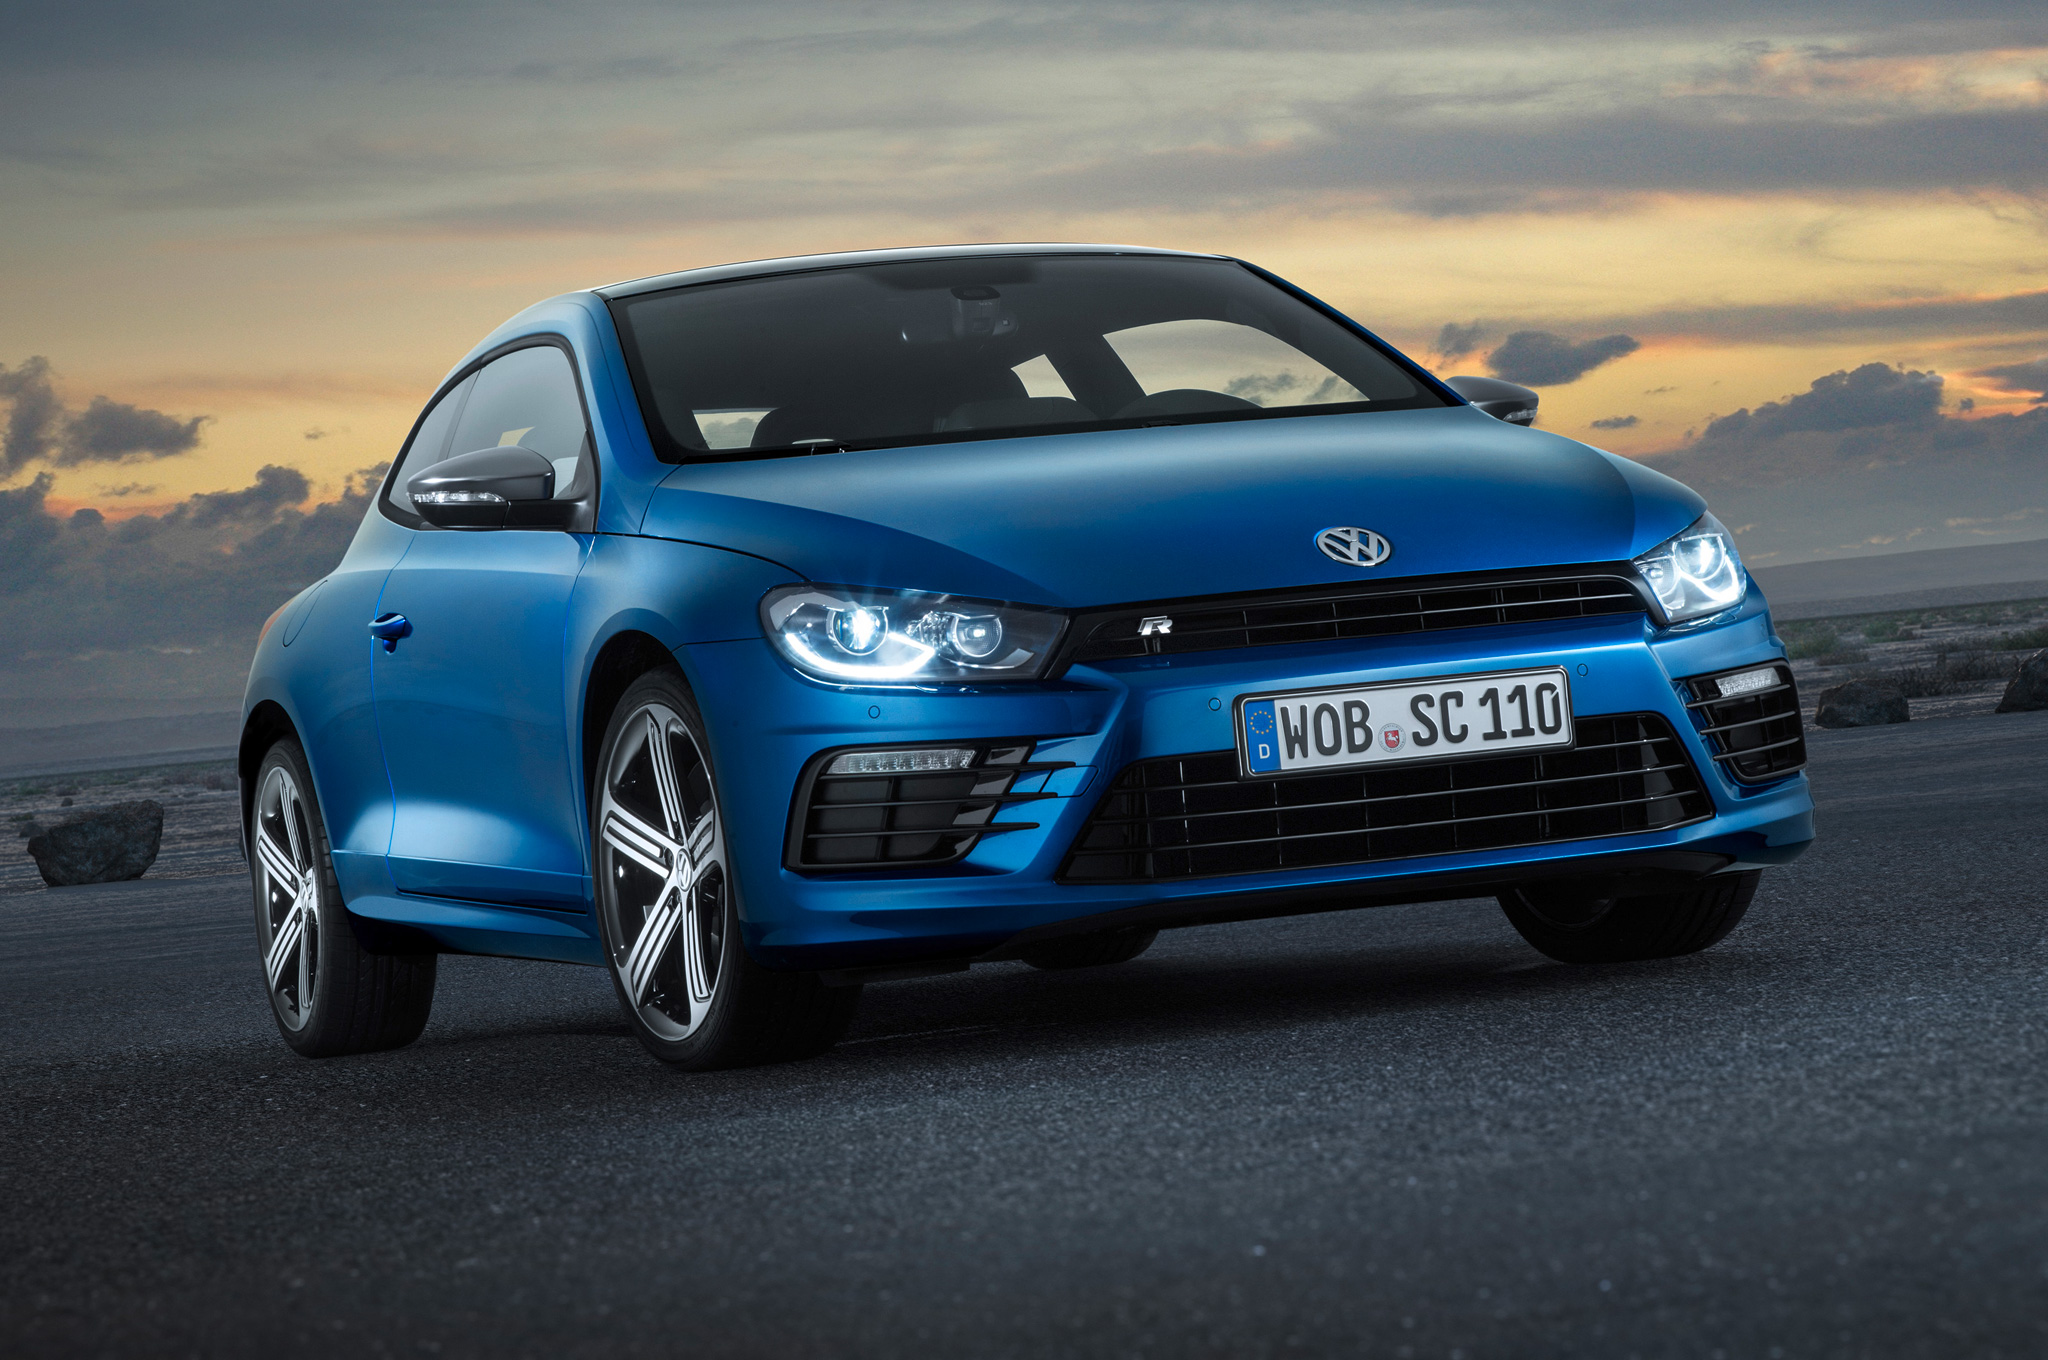 Refreshed Volkswagen Scirocco Hot Hatch Debuts Before Geneva Motor Show